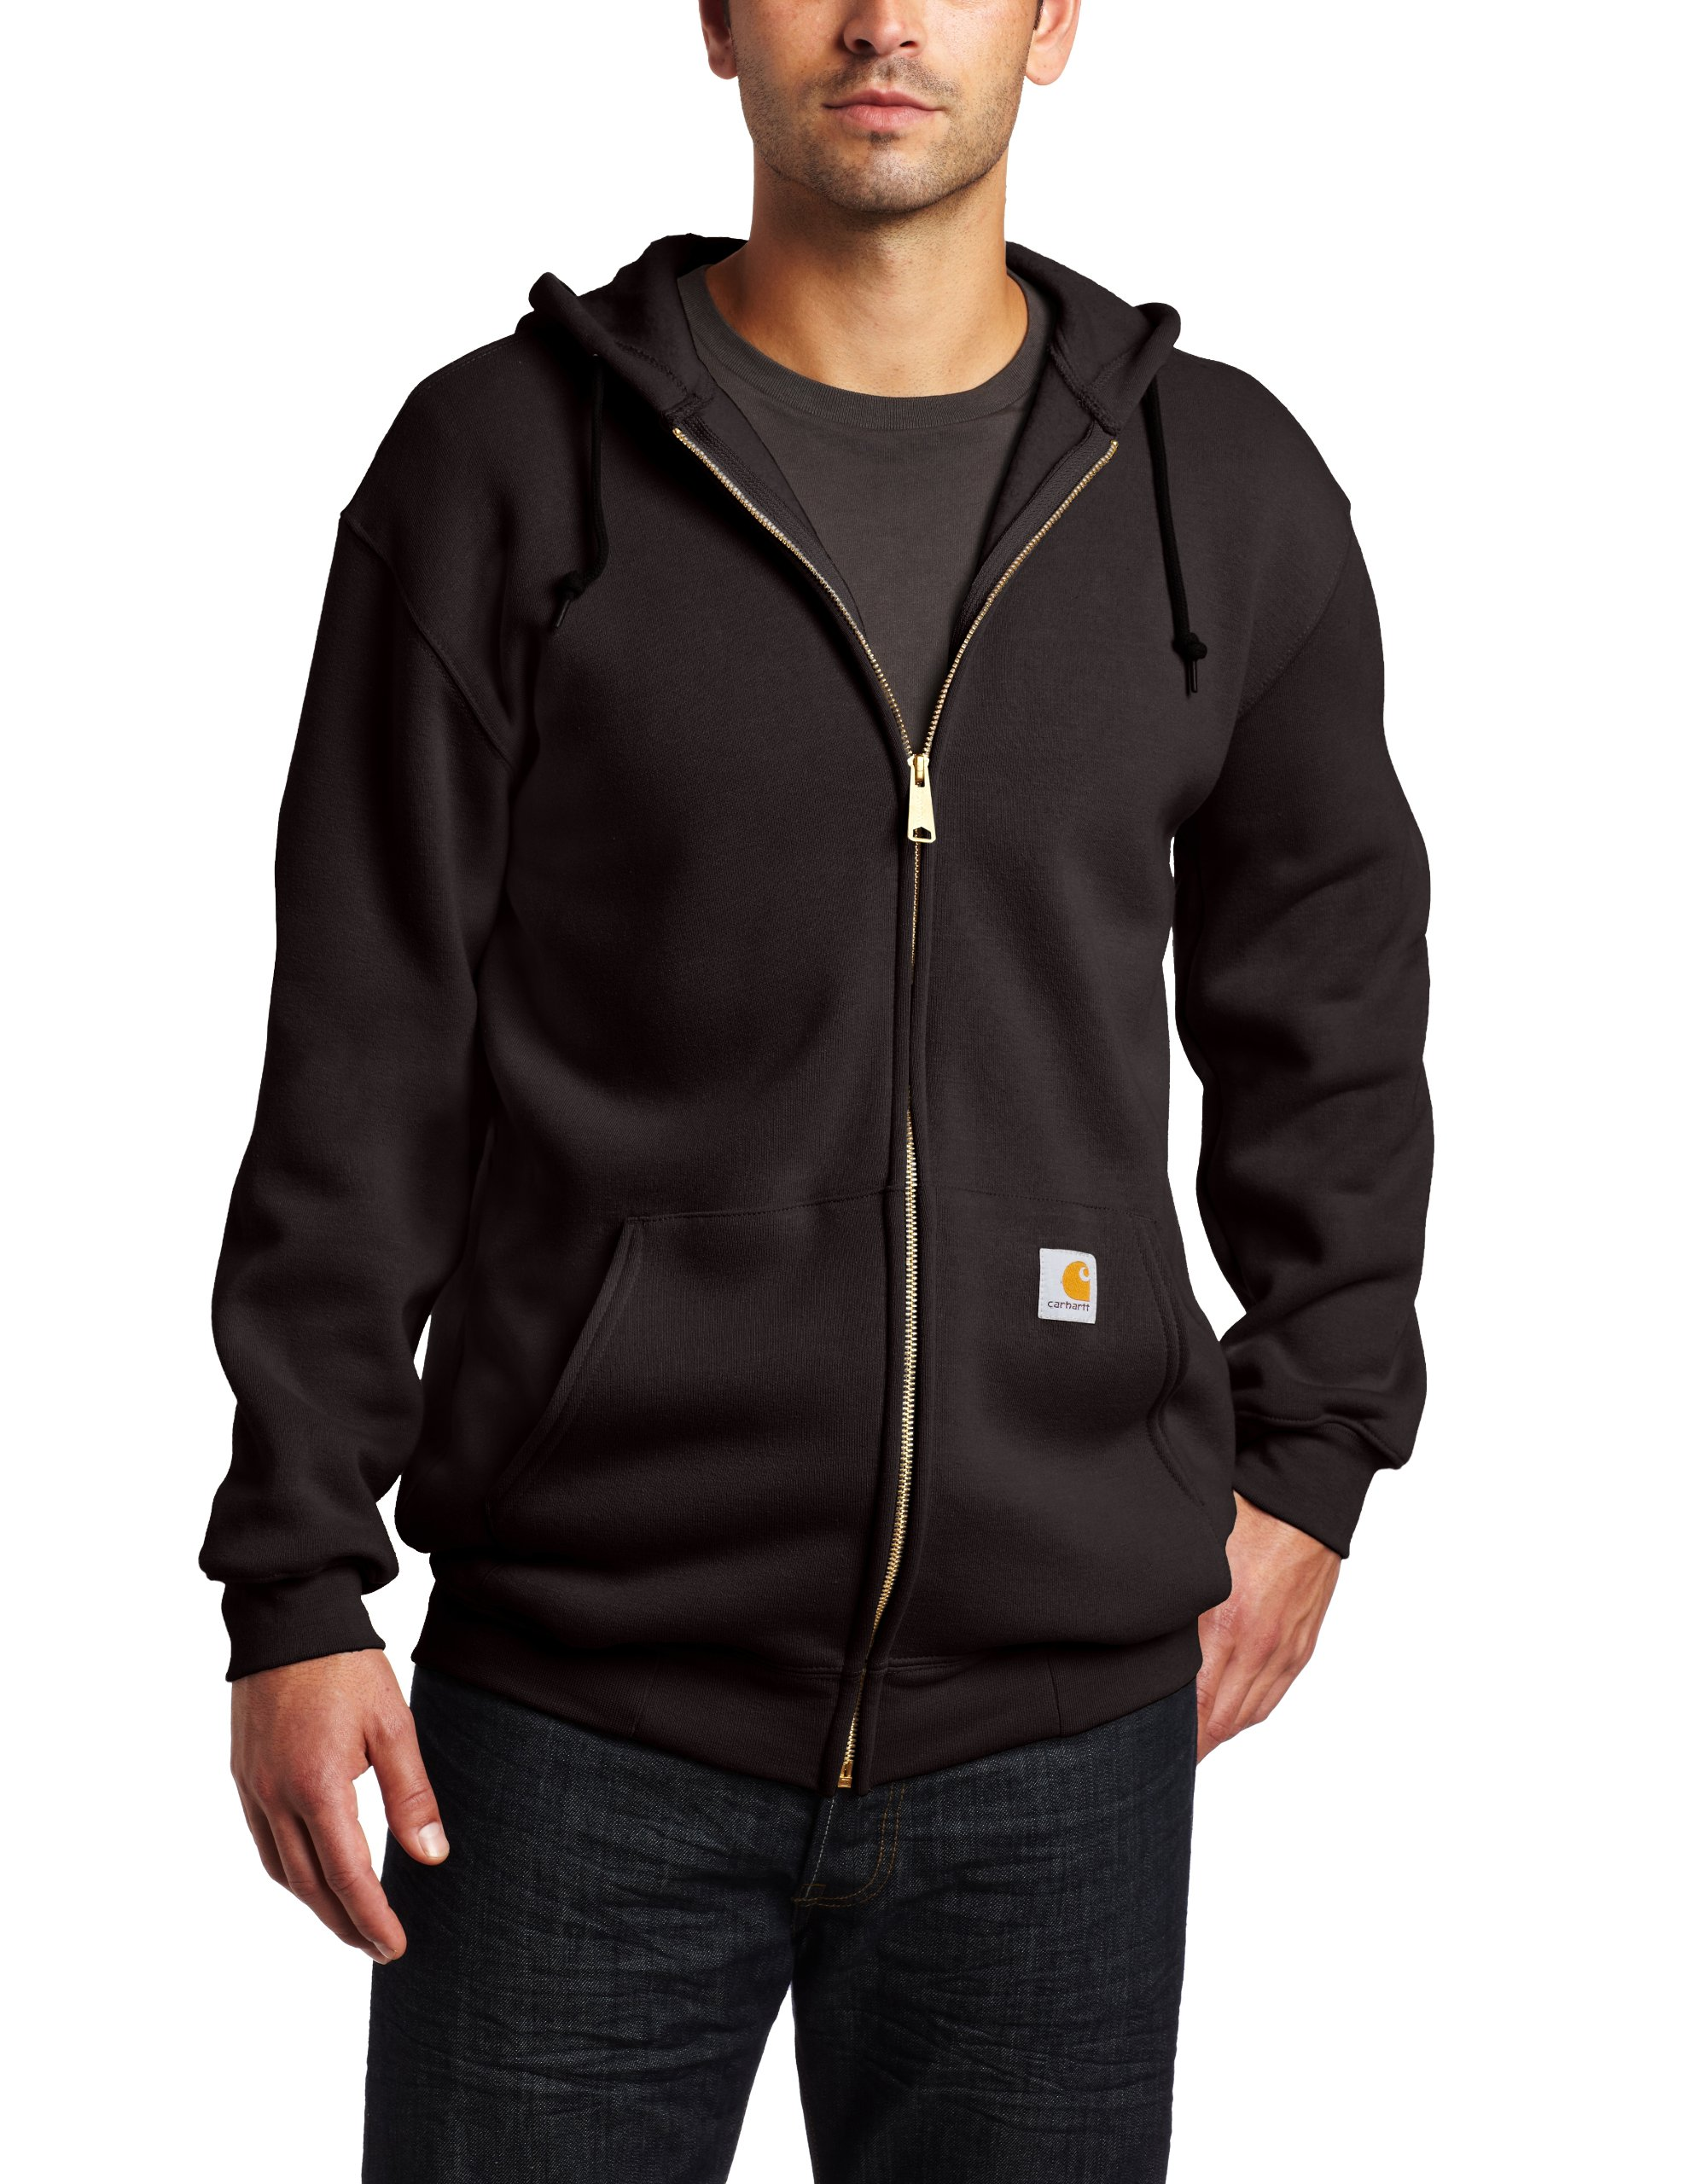 Carhartt Men's Big & Tall Midweight Sweatshirt Hooded Zip Front Original Fit K122,Black,XX-Large Tall by Carhartt